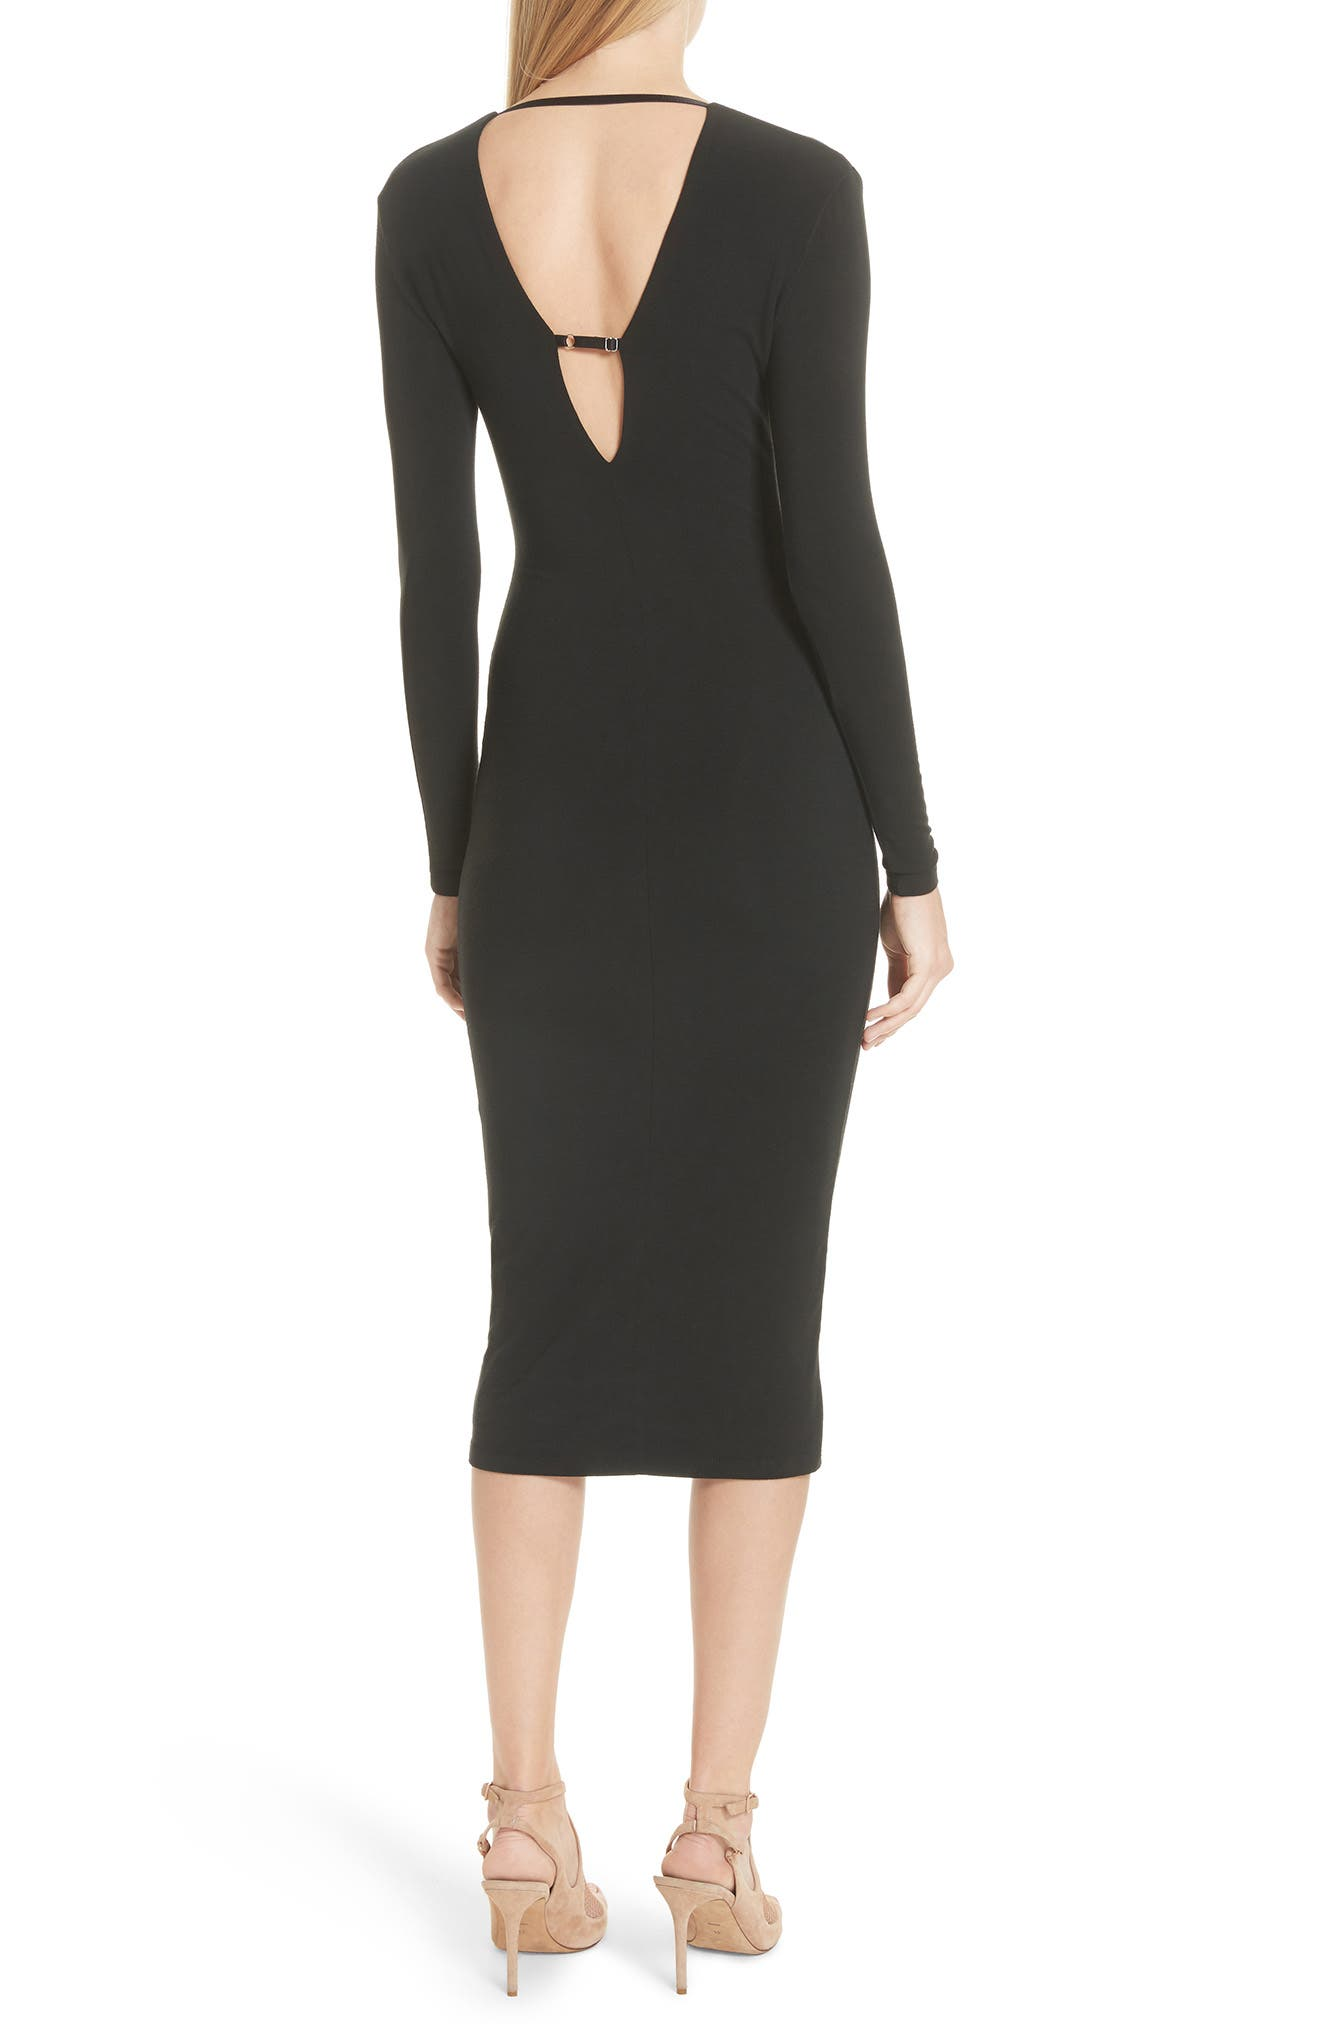 T by Alexander Wang Keyhole Neck Body-Con Dress,                             Alternate thumbnail 2, color,                             001